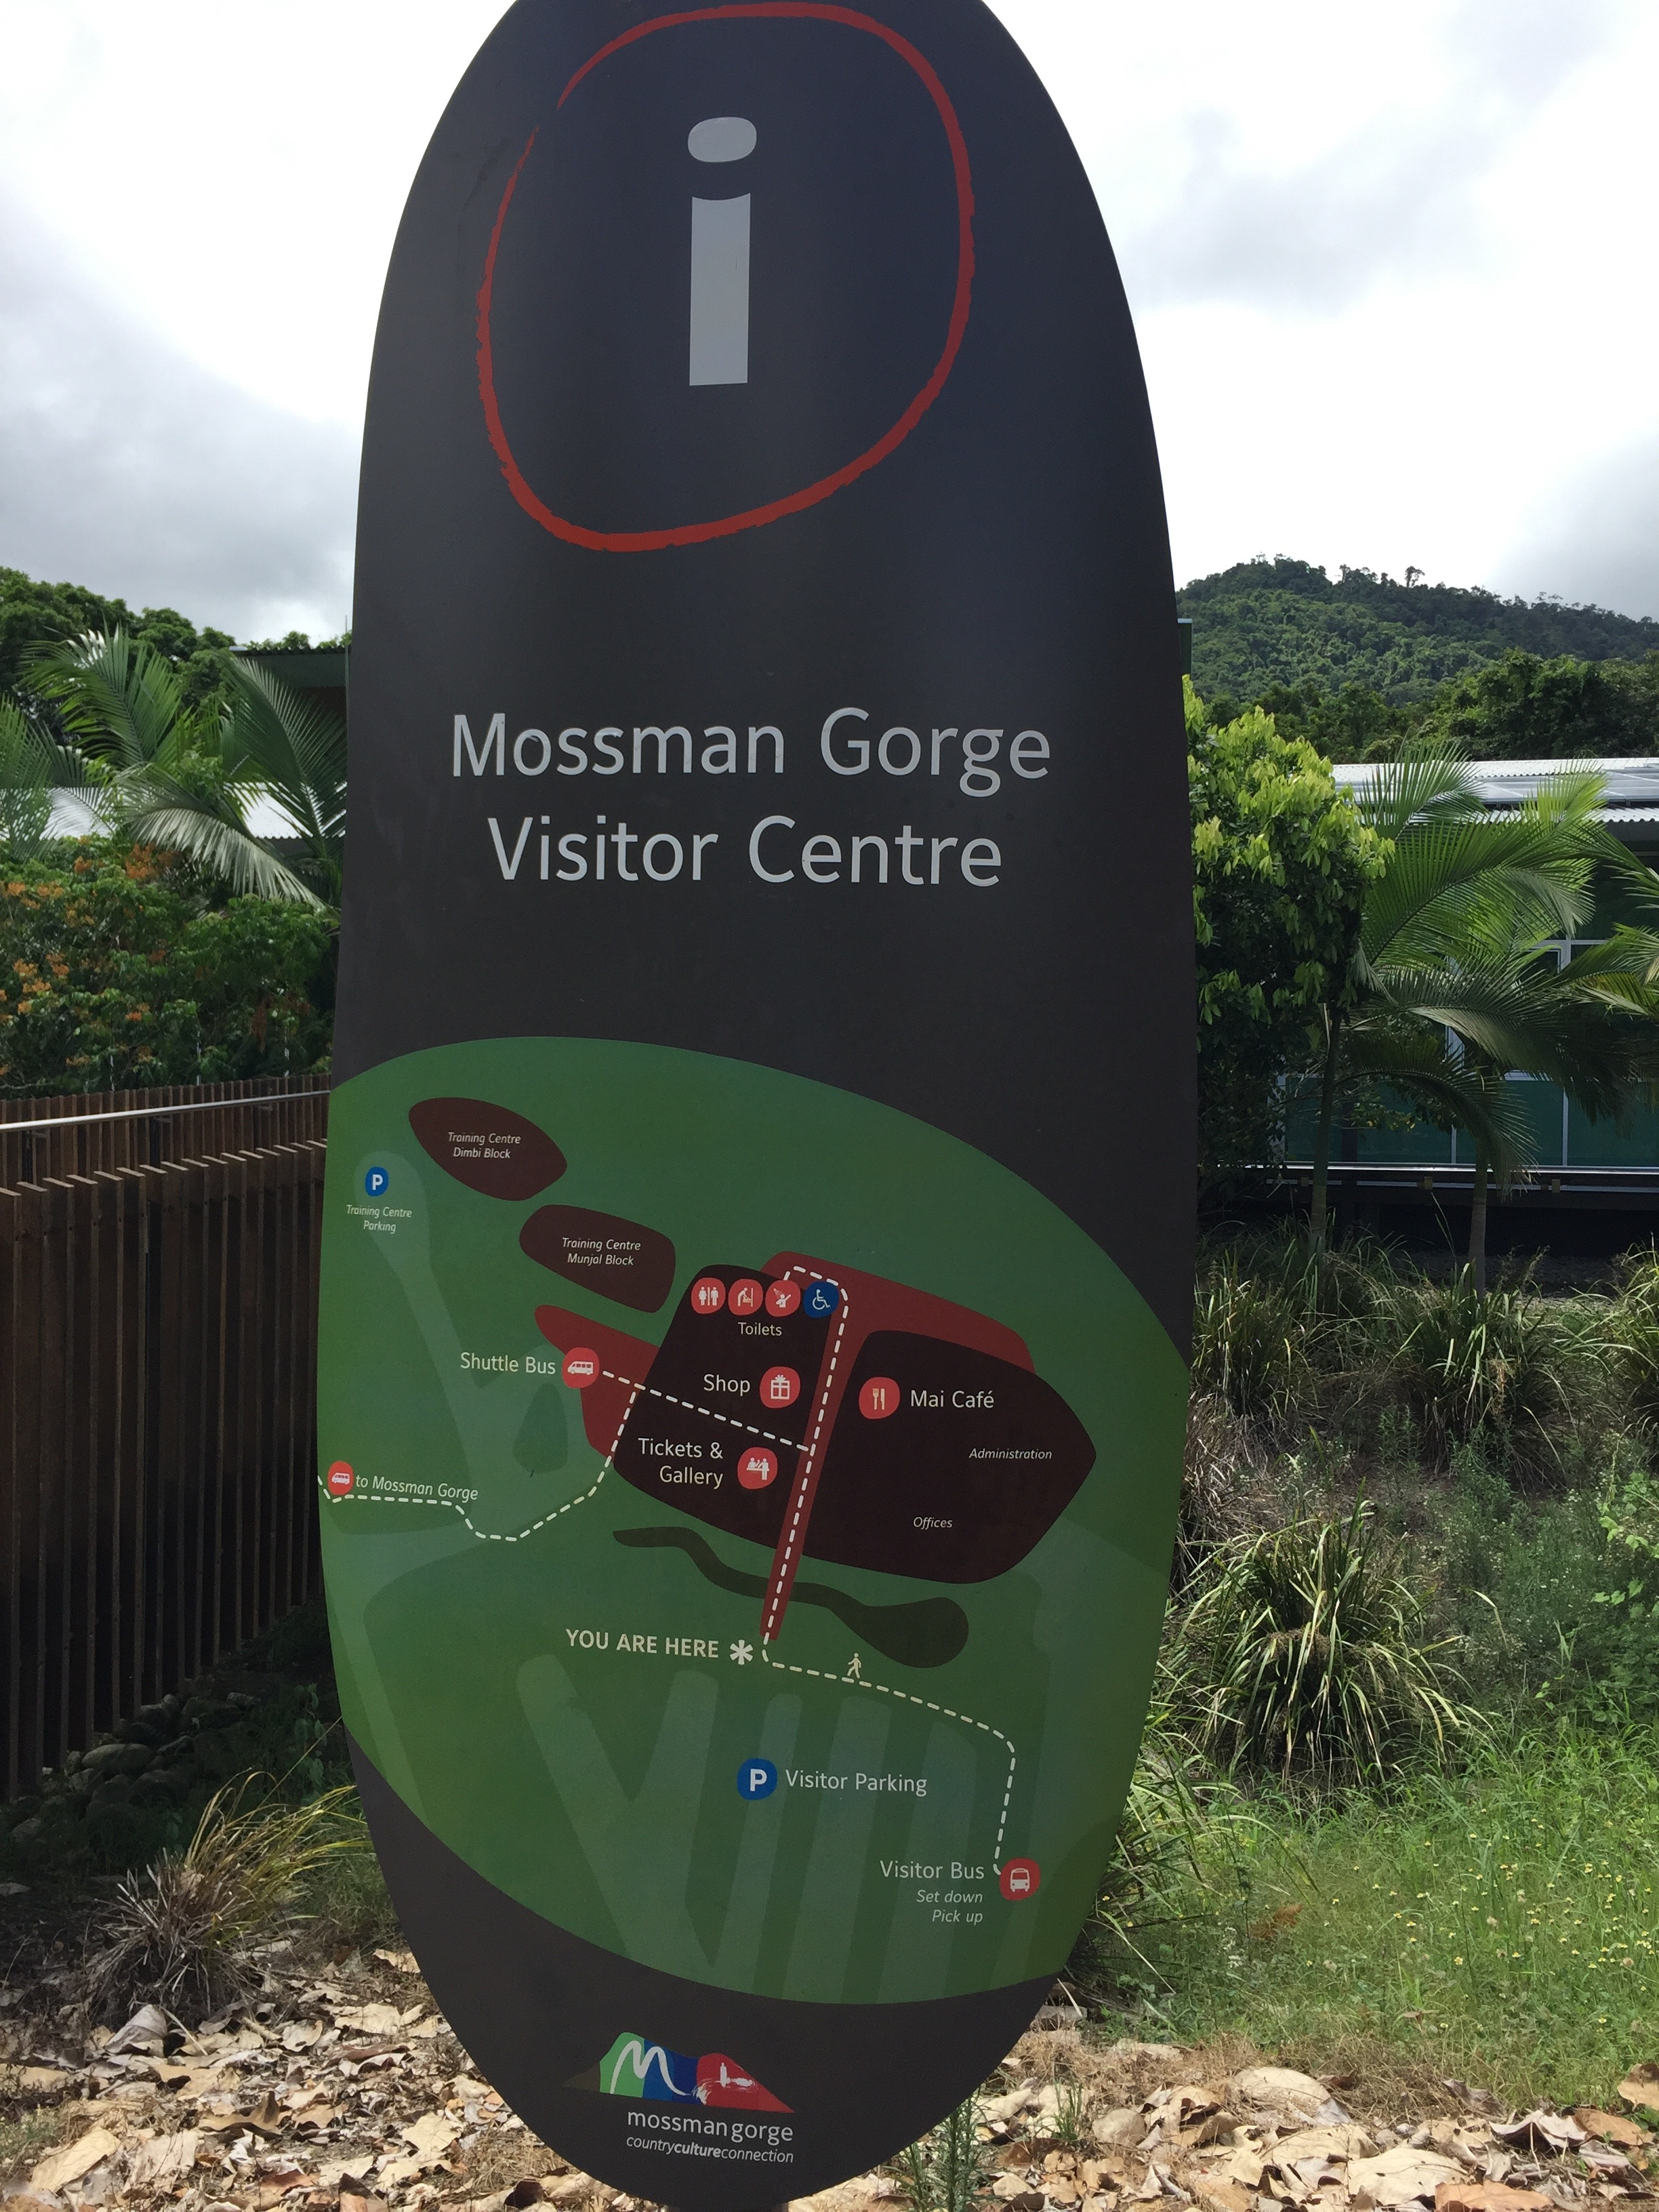 Mossman Gorge visitor centre sign with map